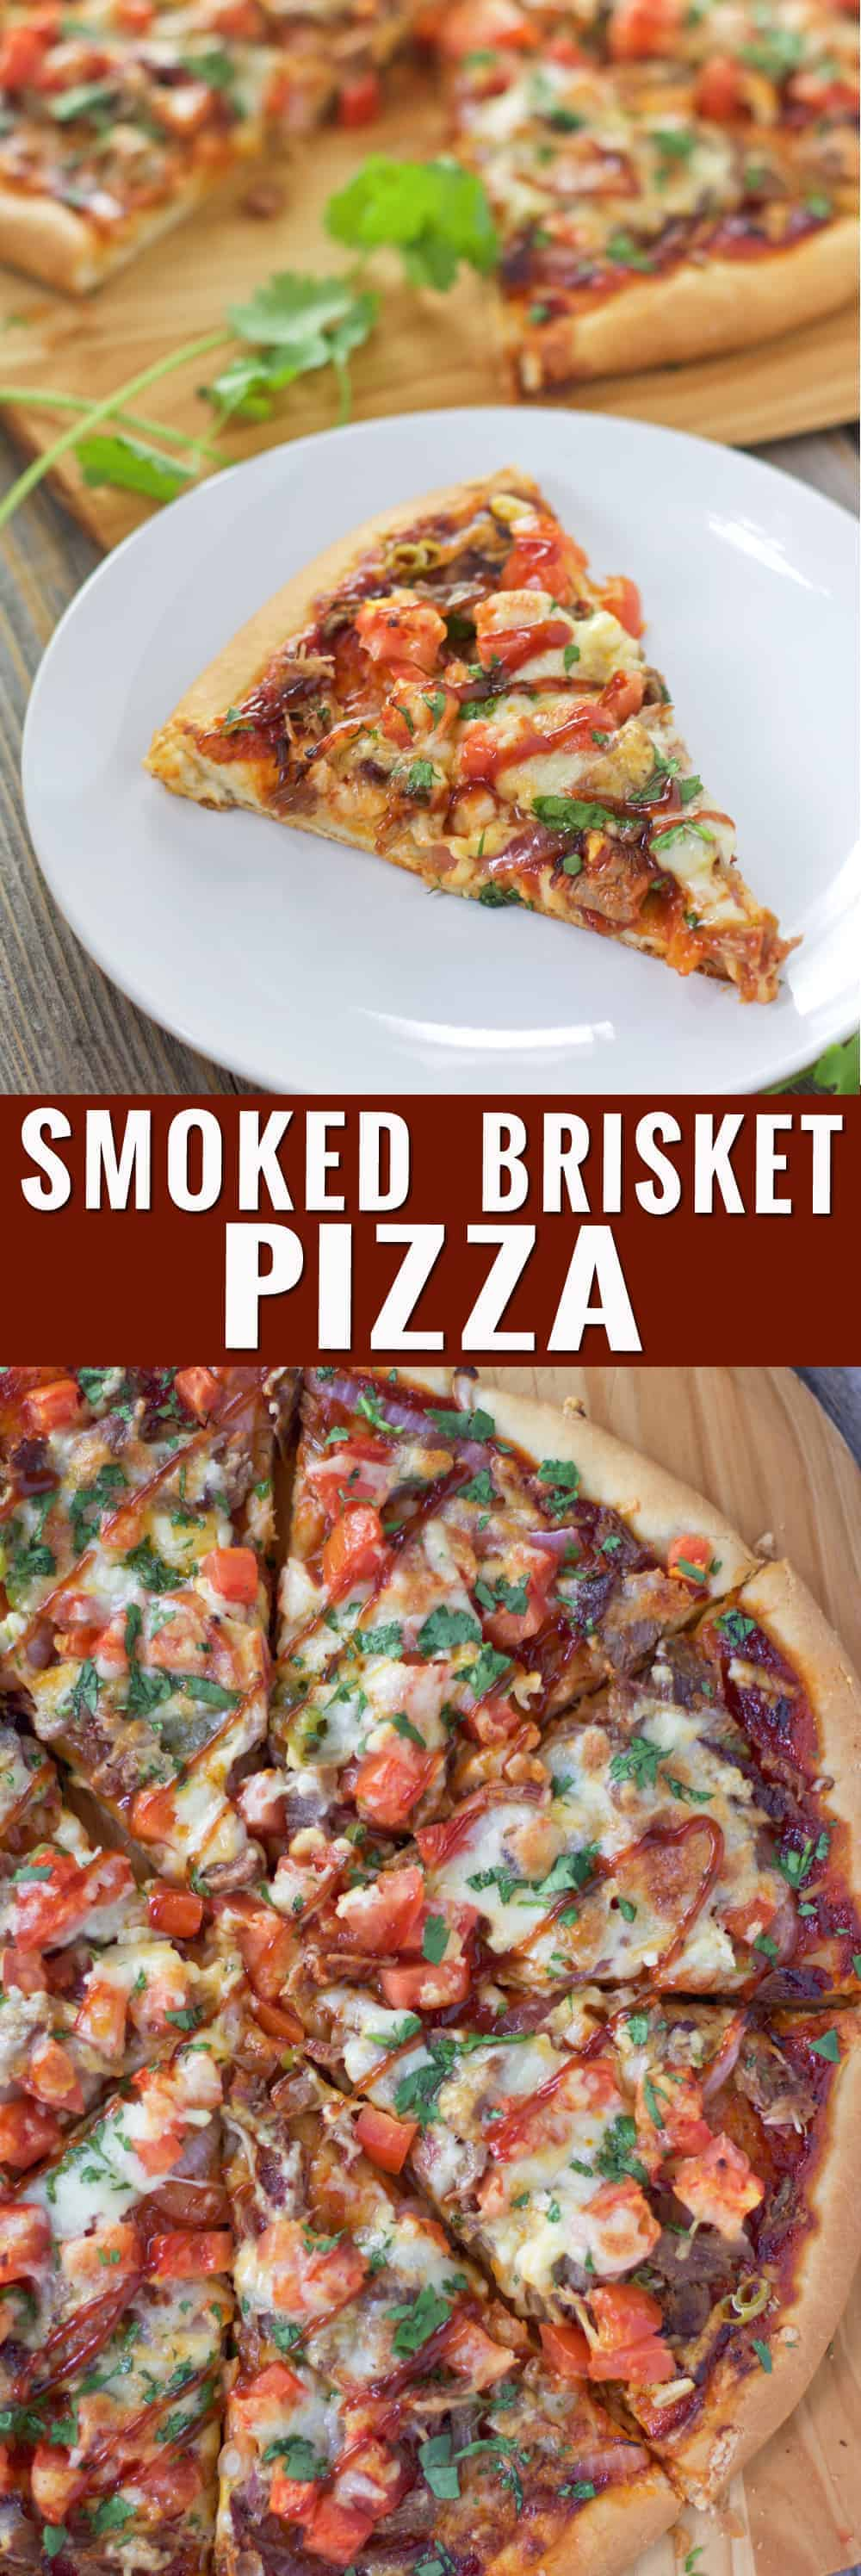 Smoked Brisket Pizza. The perfect use for leftover brisket! Your friends are going to love it!!!